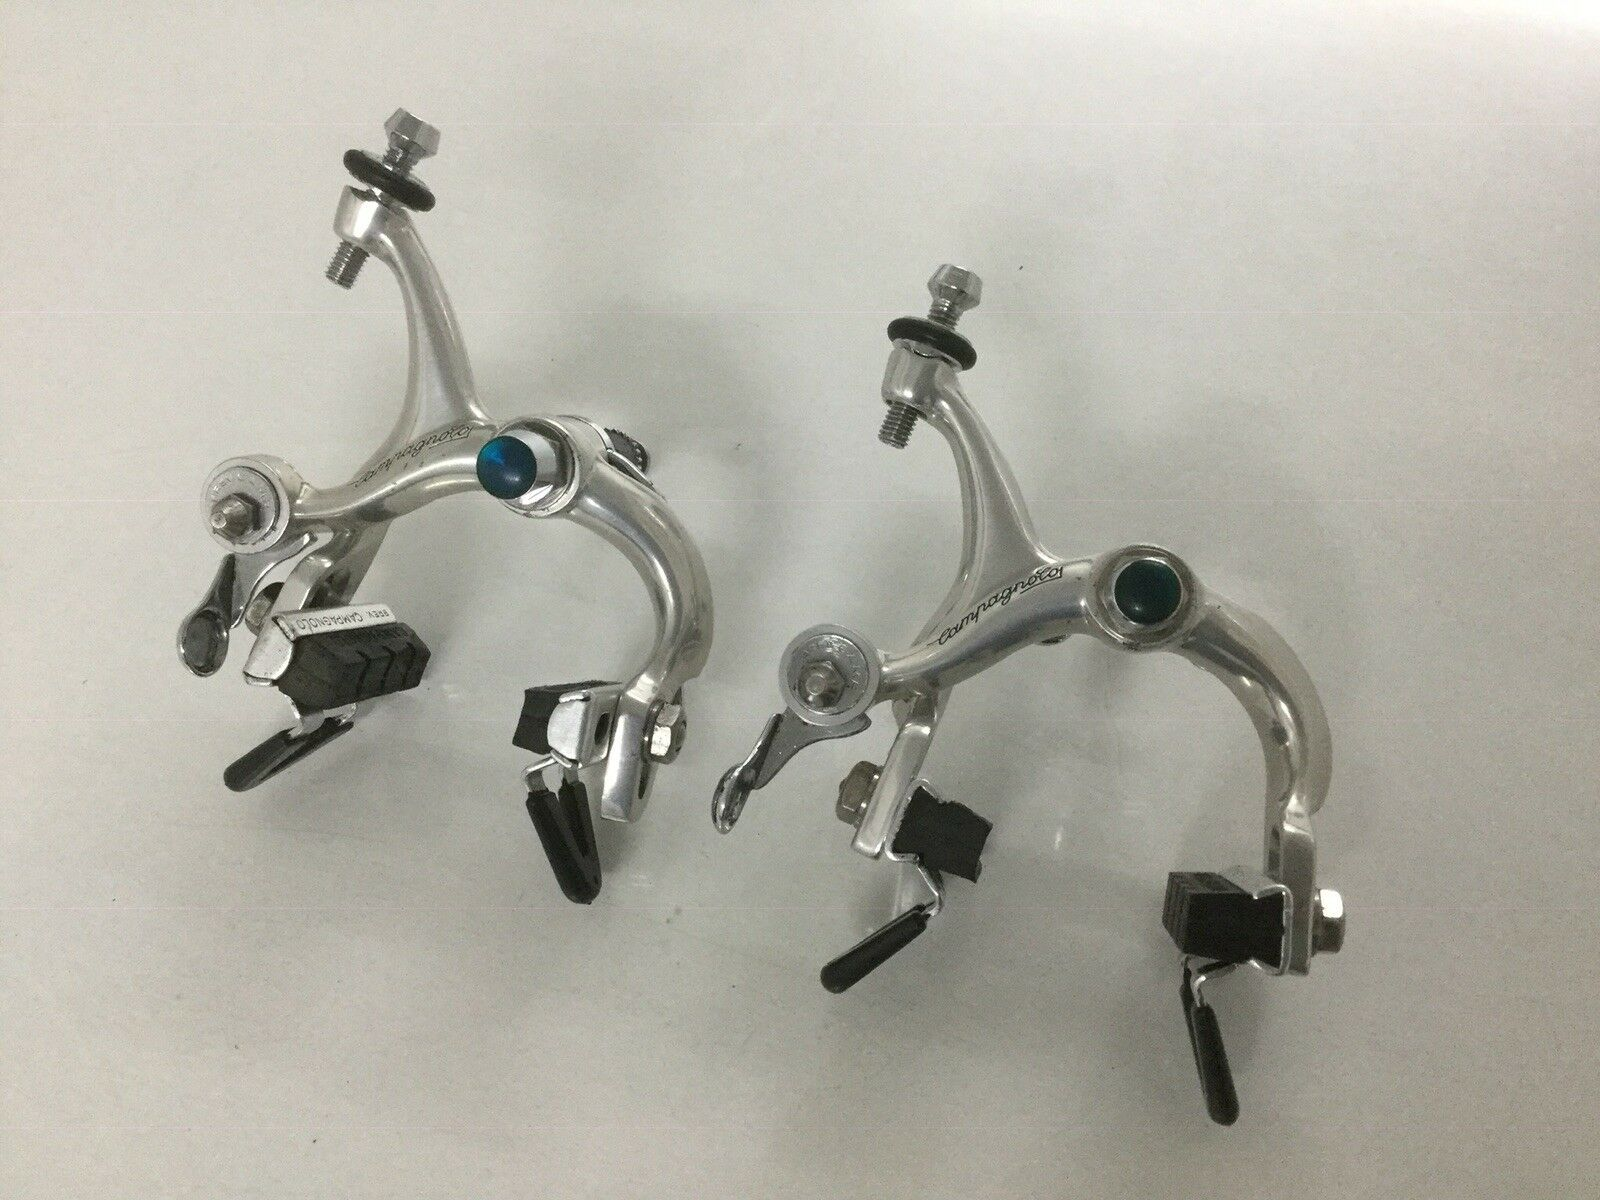 Vintage Campagnolo Cobalto Brakes Rare Excellent Condition   here has the latest